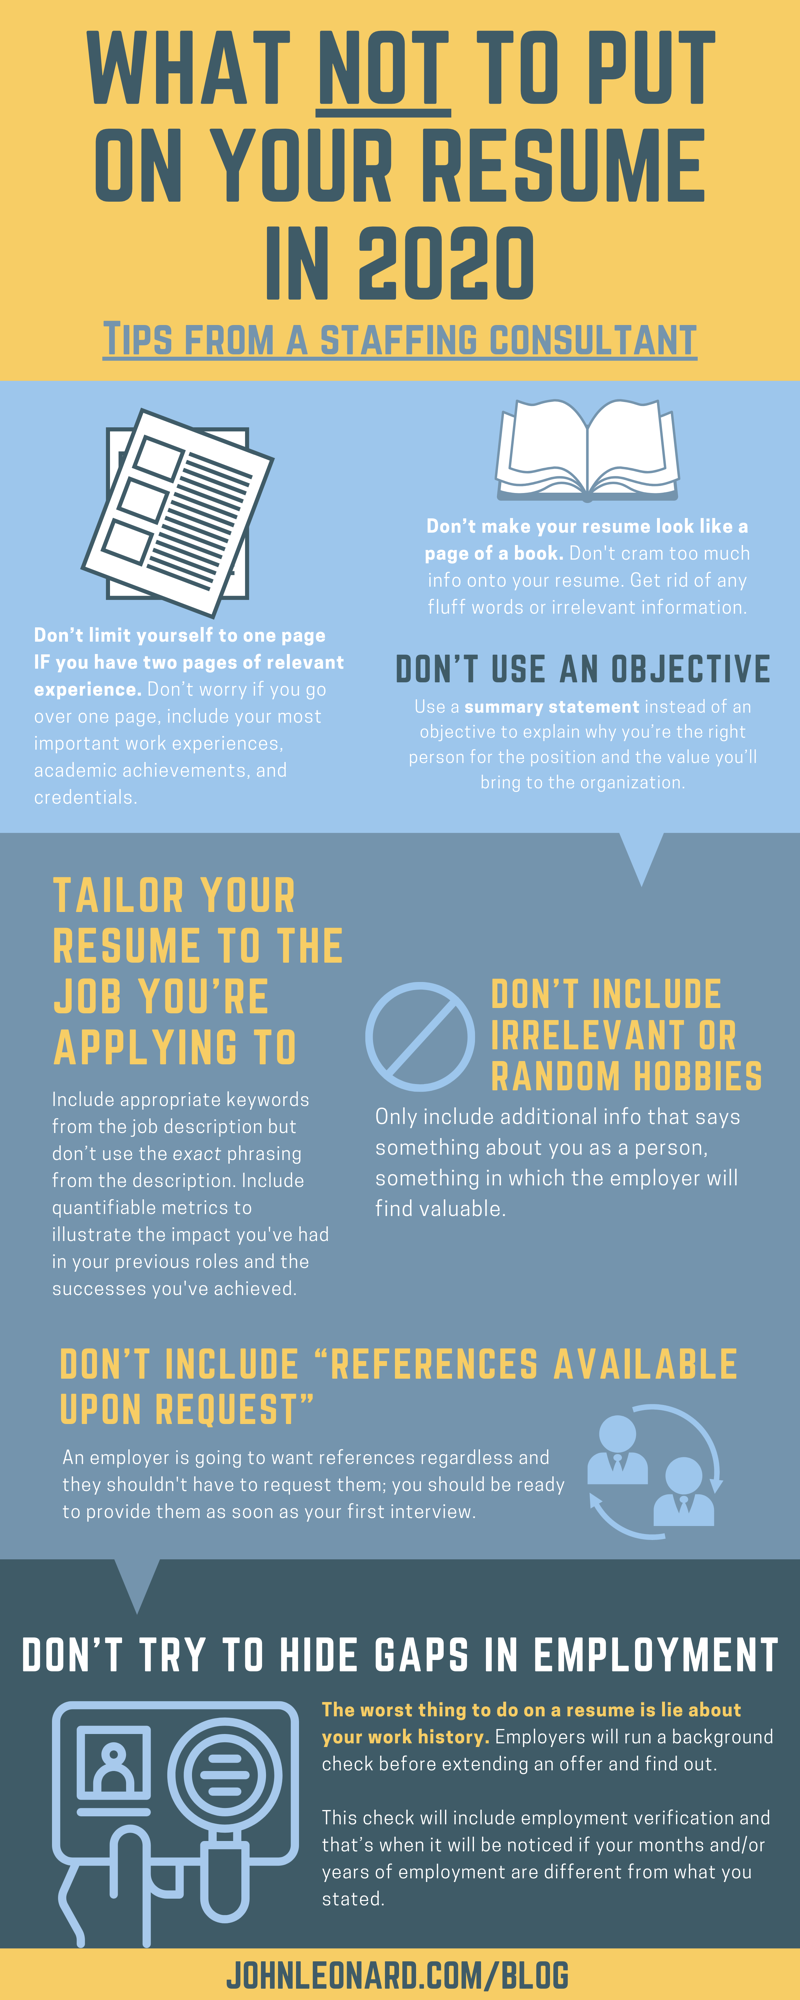 what not to put on your resume in 2020